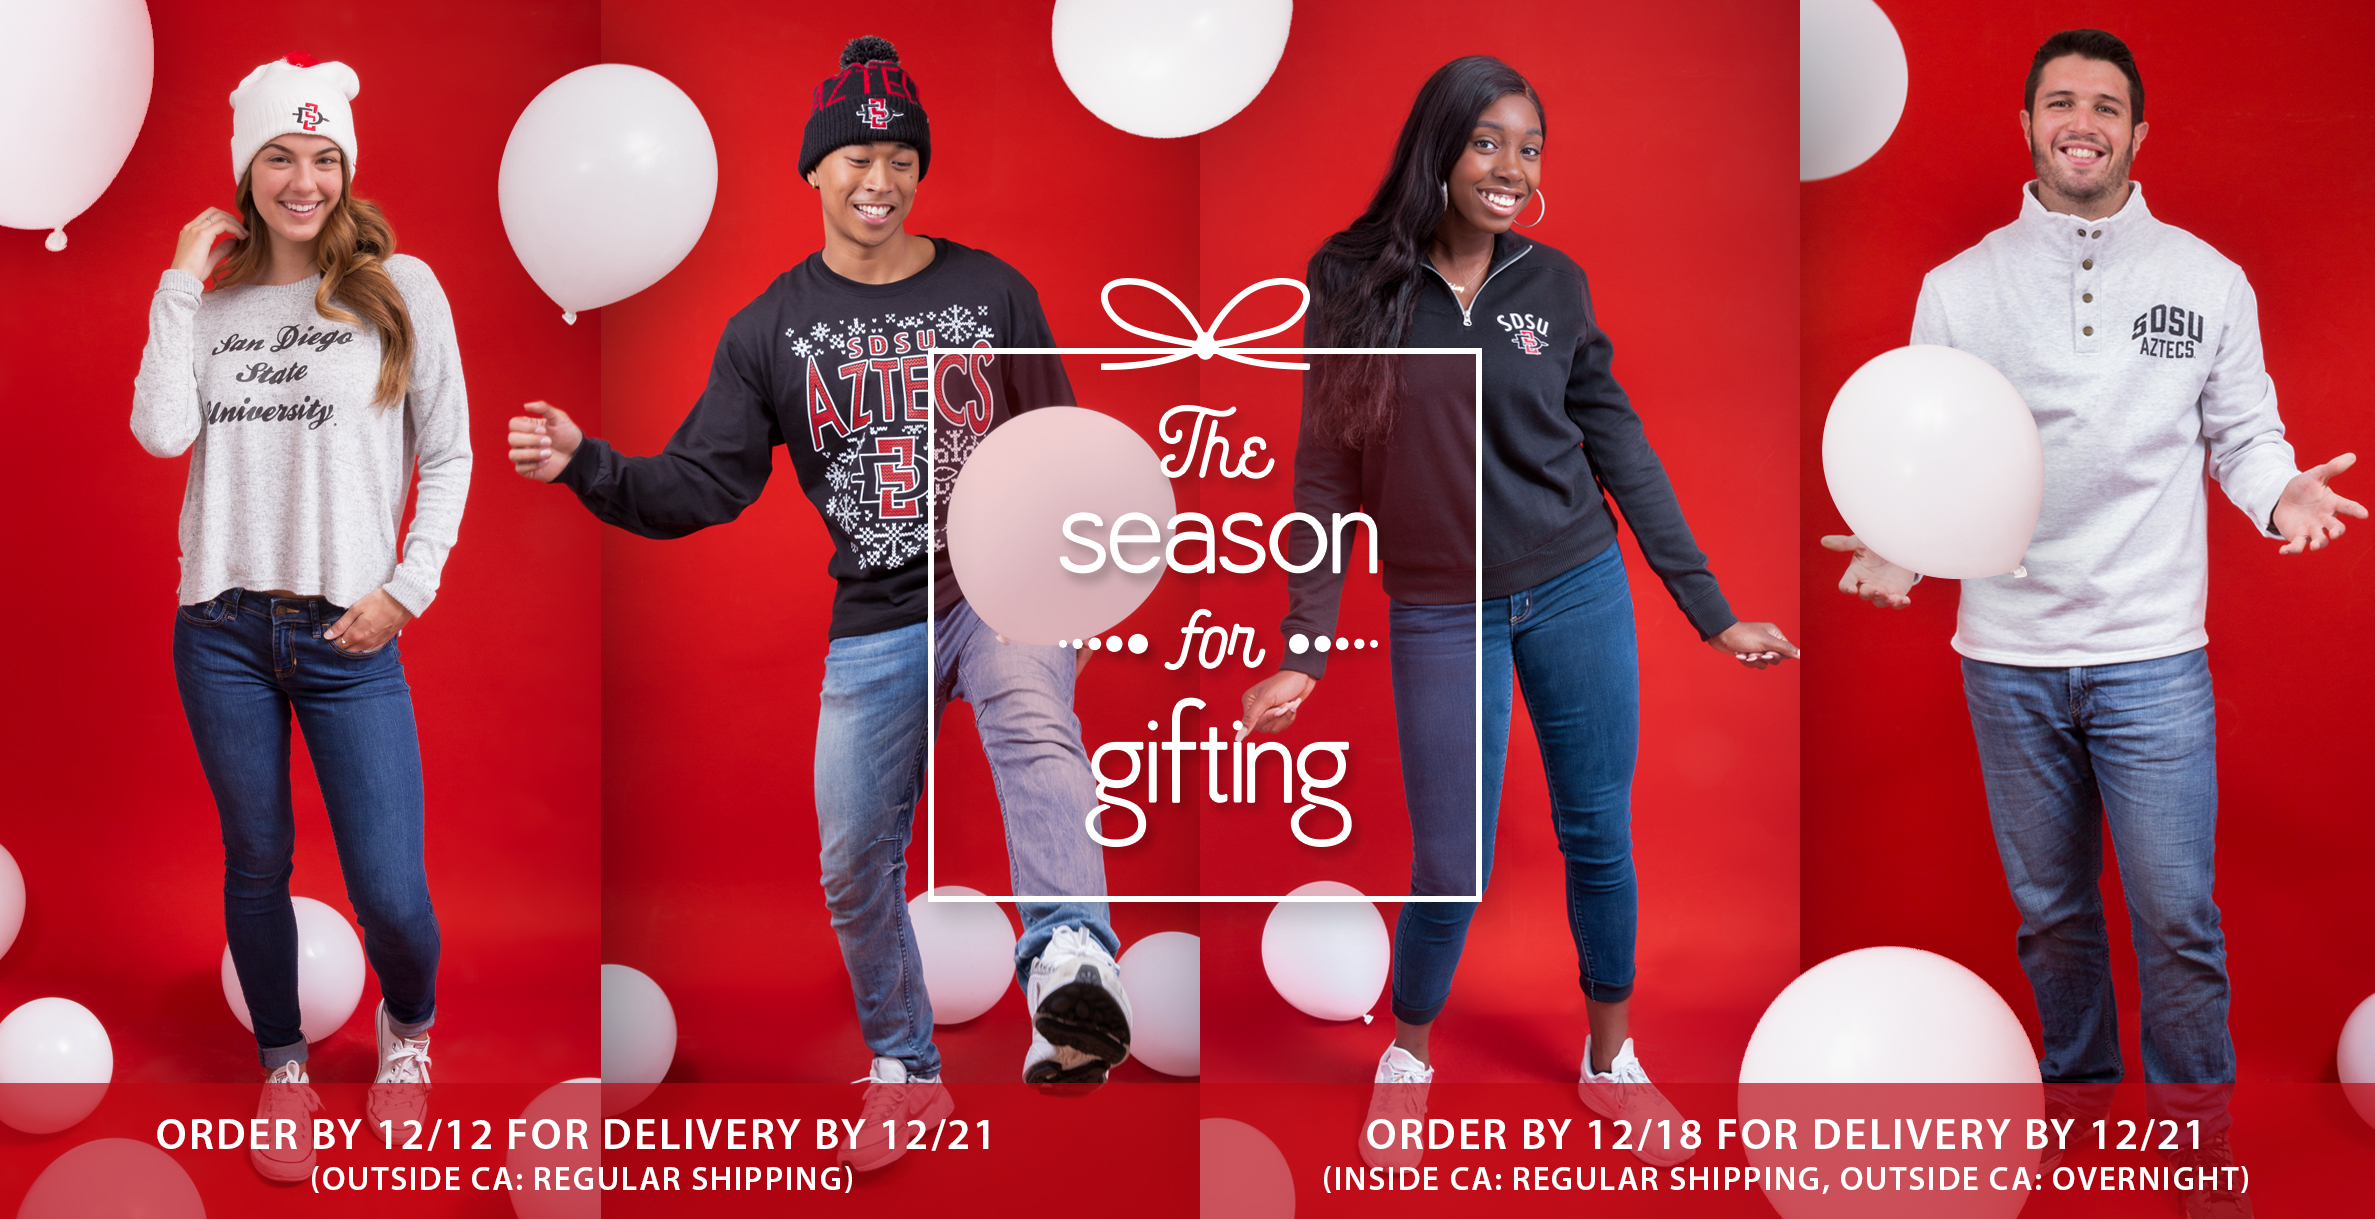 The season for gifting. Order by December 12 for delivery by December 21 outside California with regular shipping. Order by December 19 for delivery by December 21 in California with regular shipping and outside California with overnight shipping.